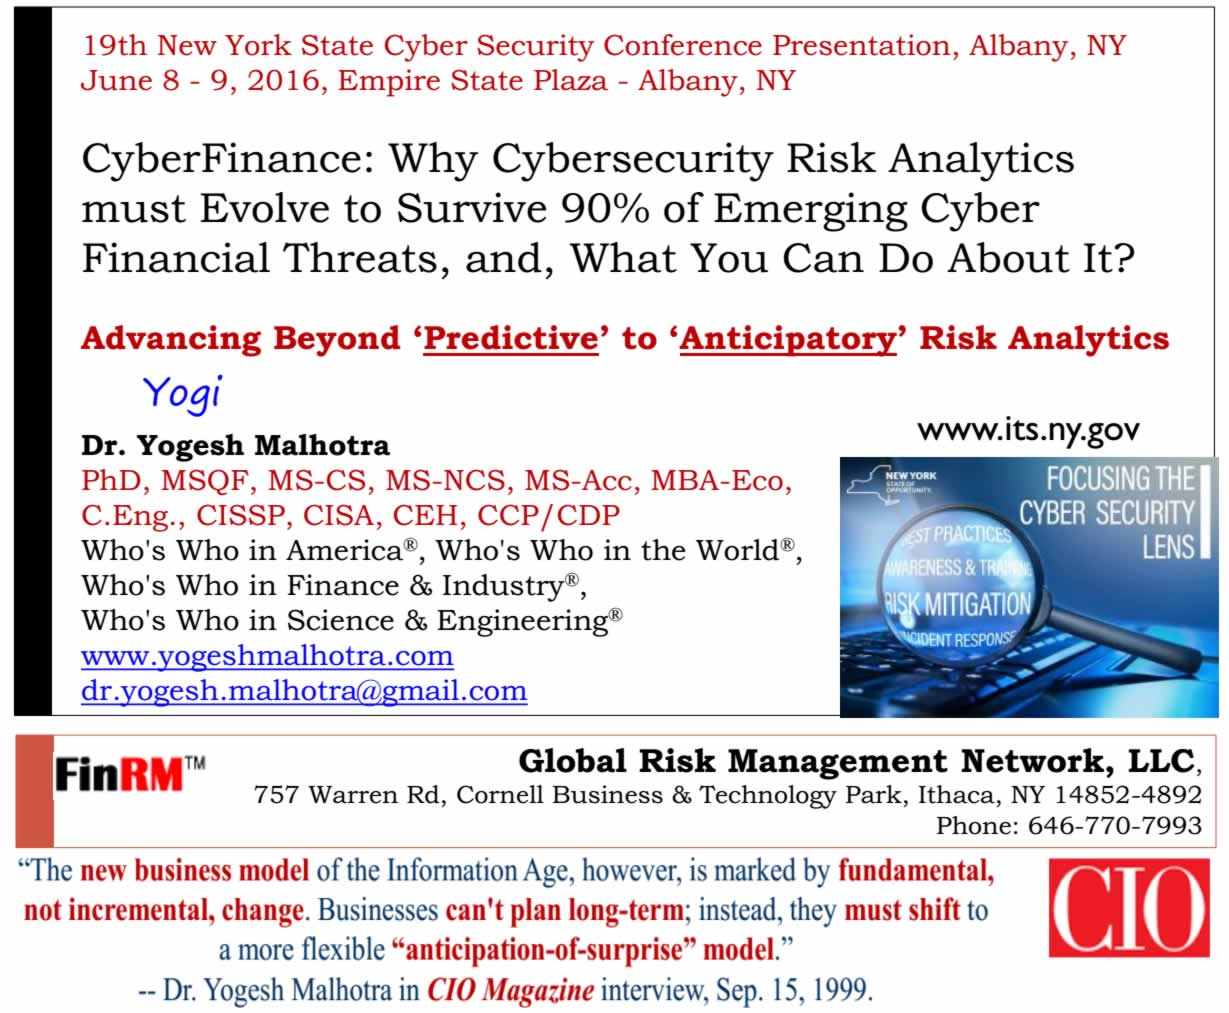 2016 New York State CyberSecurity Conference